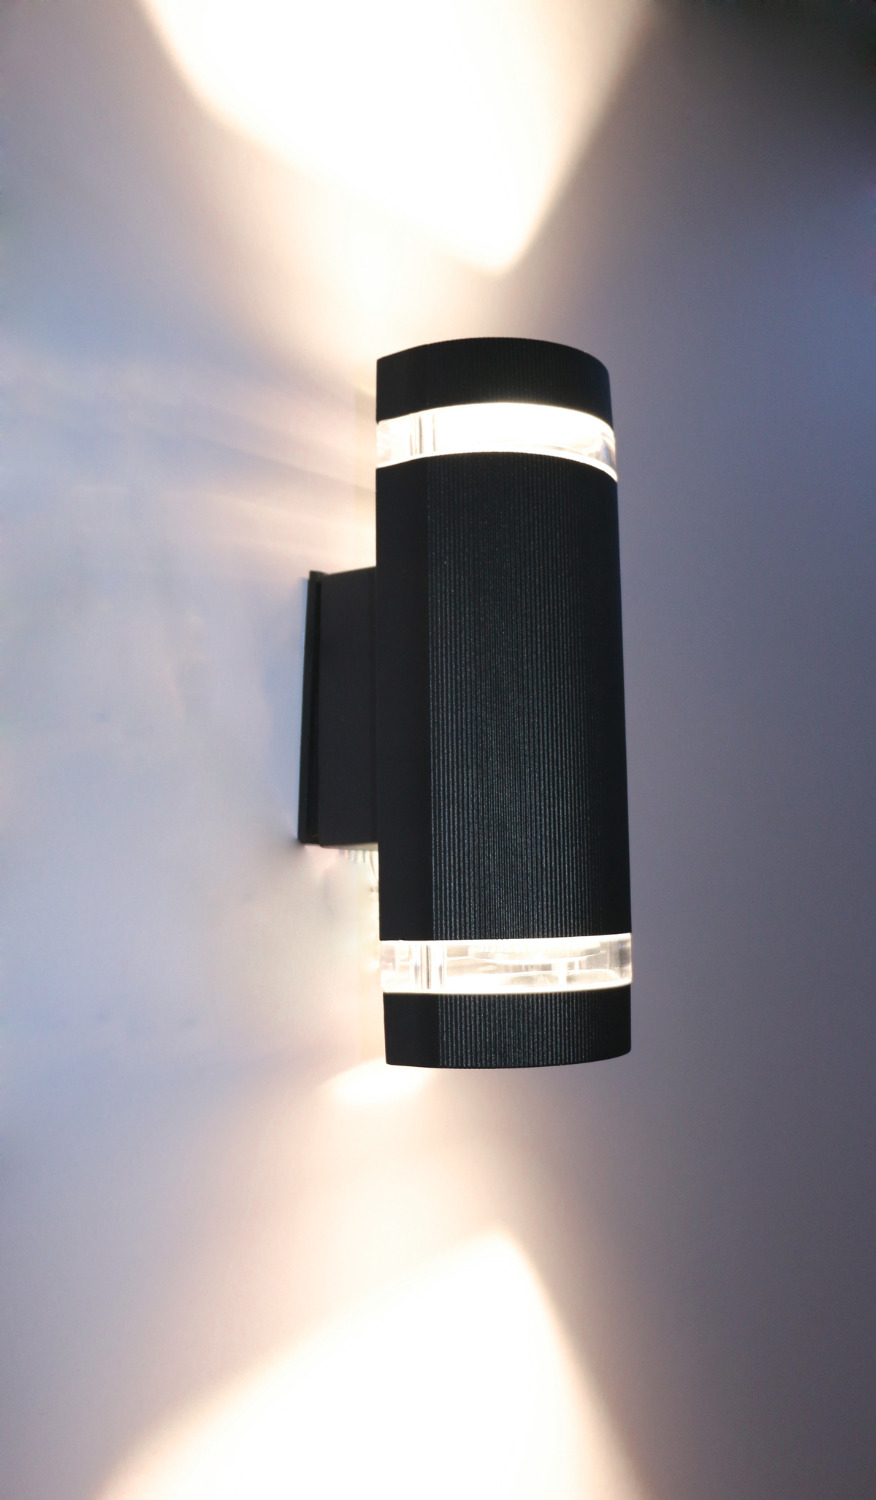 semi cylinder up down indoor outdoor exterior wall light sconce lamp fixture kit waterproof ip65. Black Bedroom Furniture Sets. Home Design Ideas